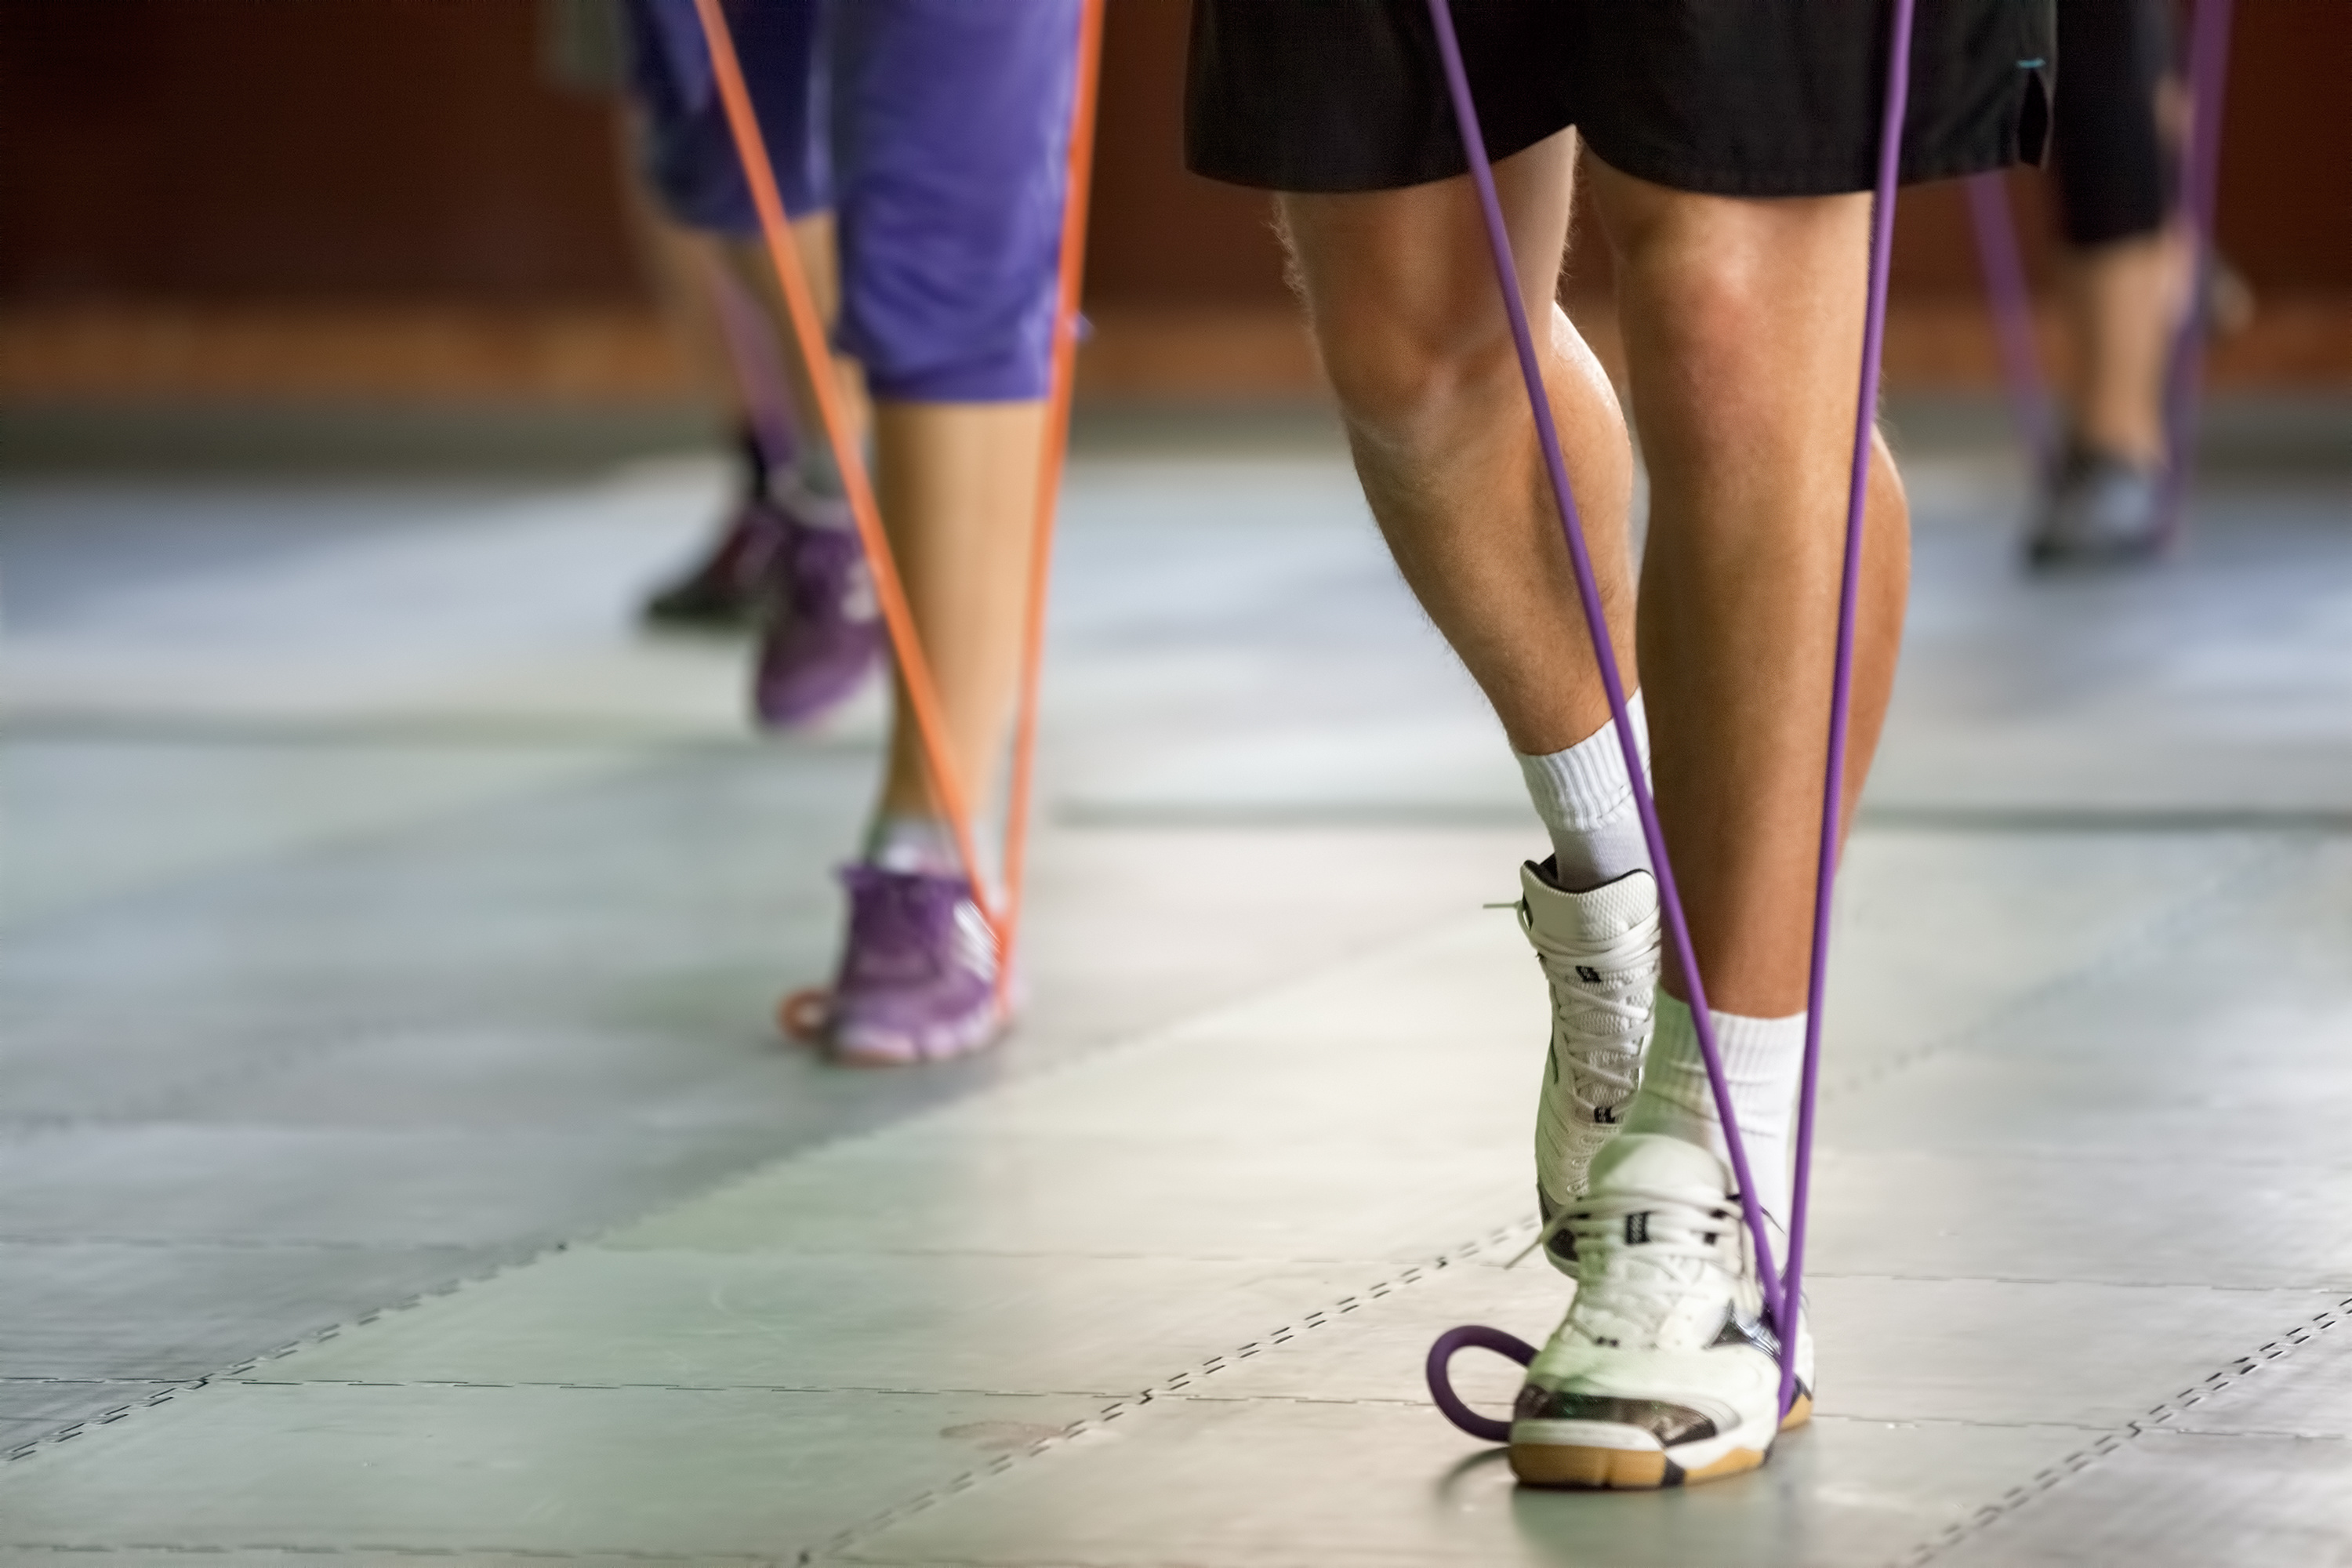 Strength training with a resistance band | Stock image, St. George News